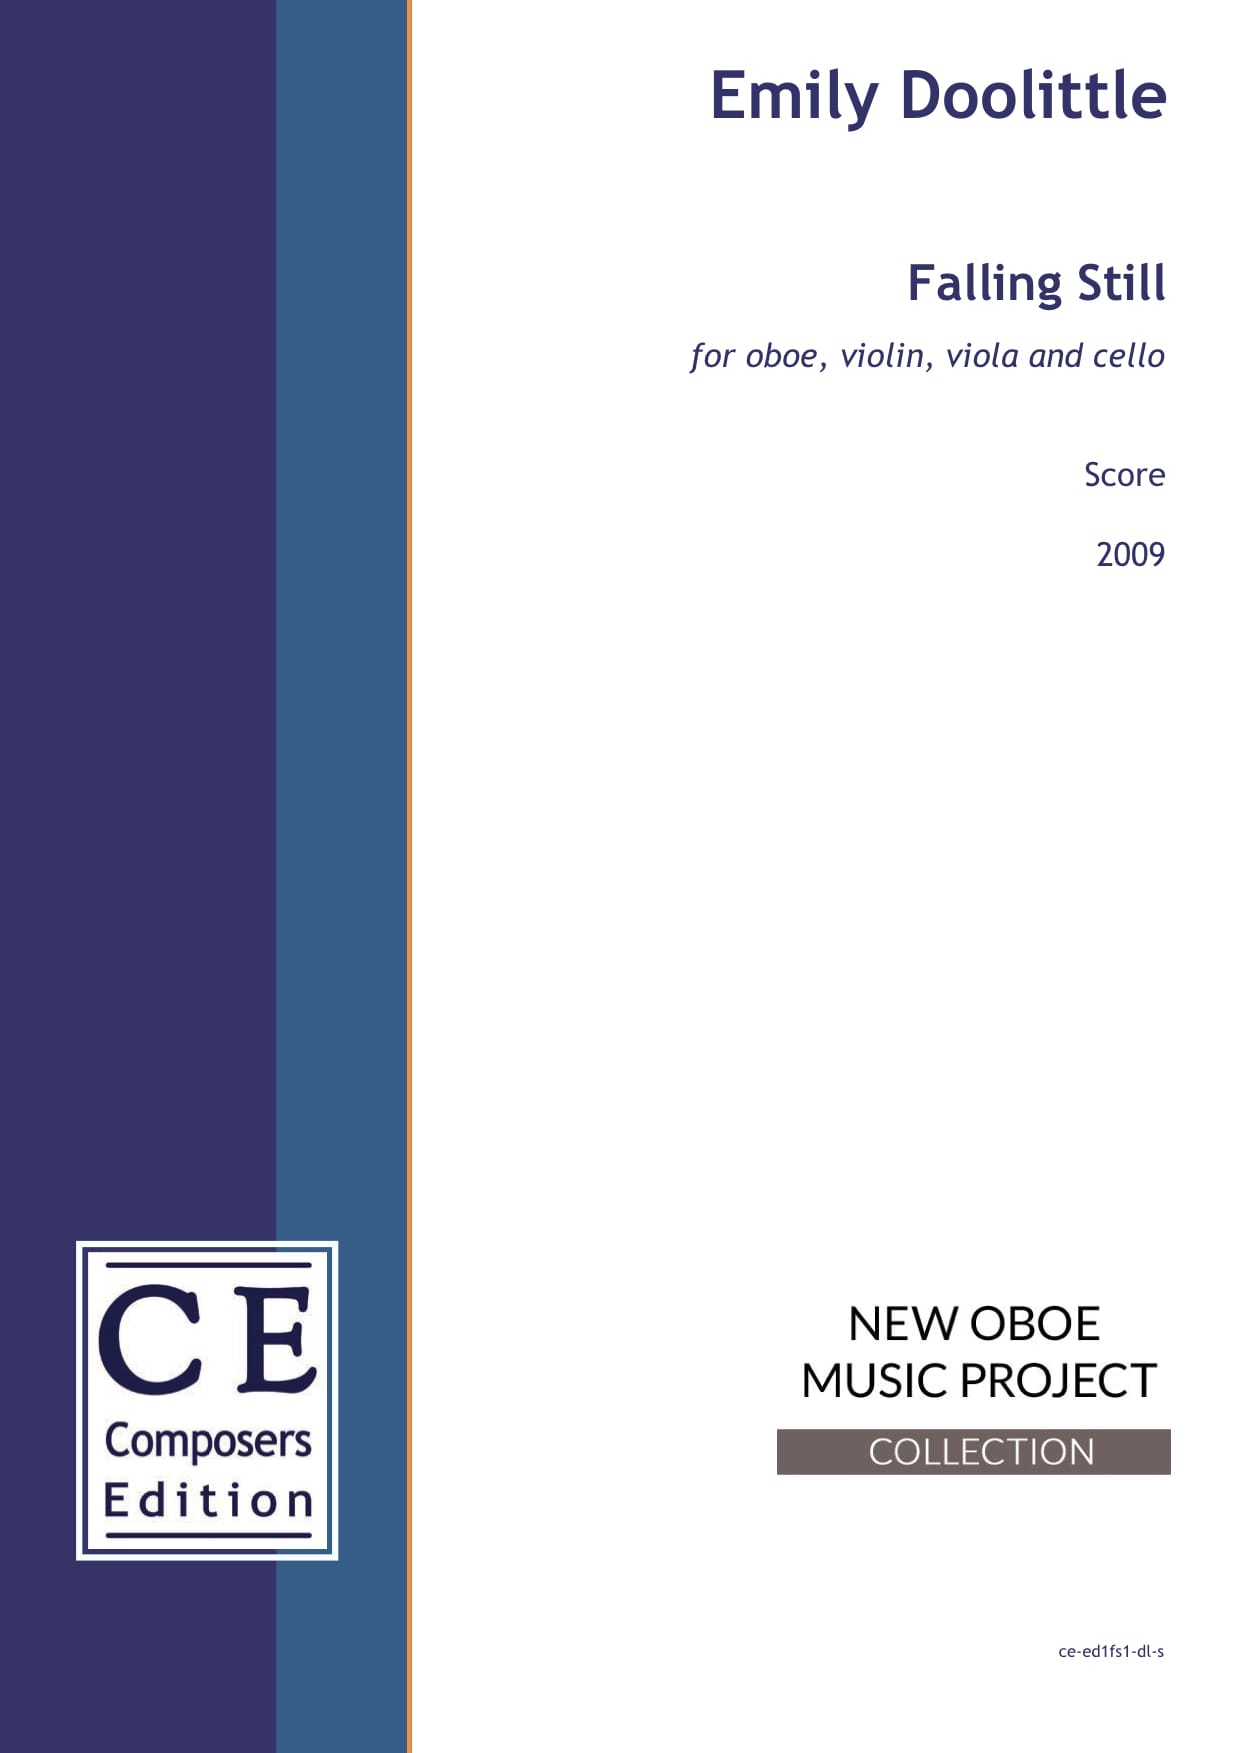 Emily Doolittle: Falling Still for oboe, violin, viola and cello